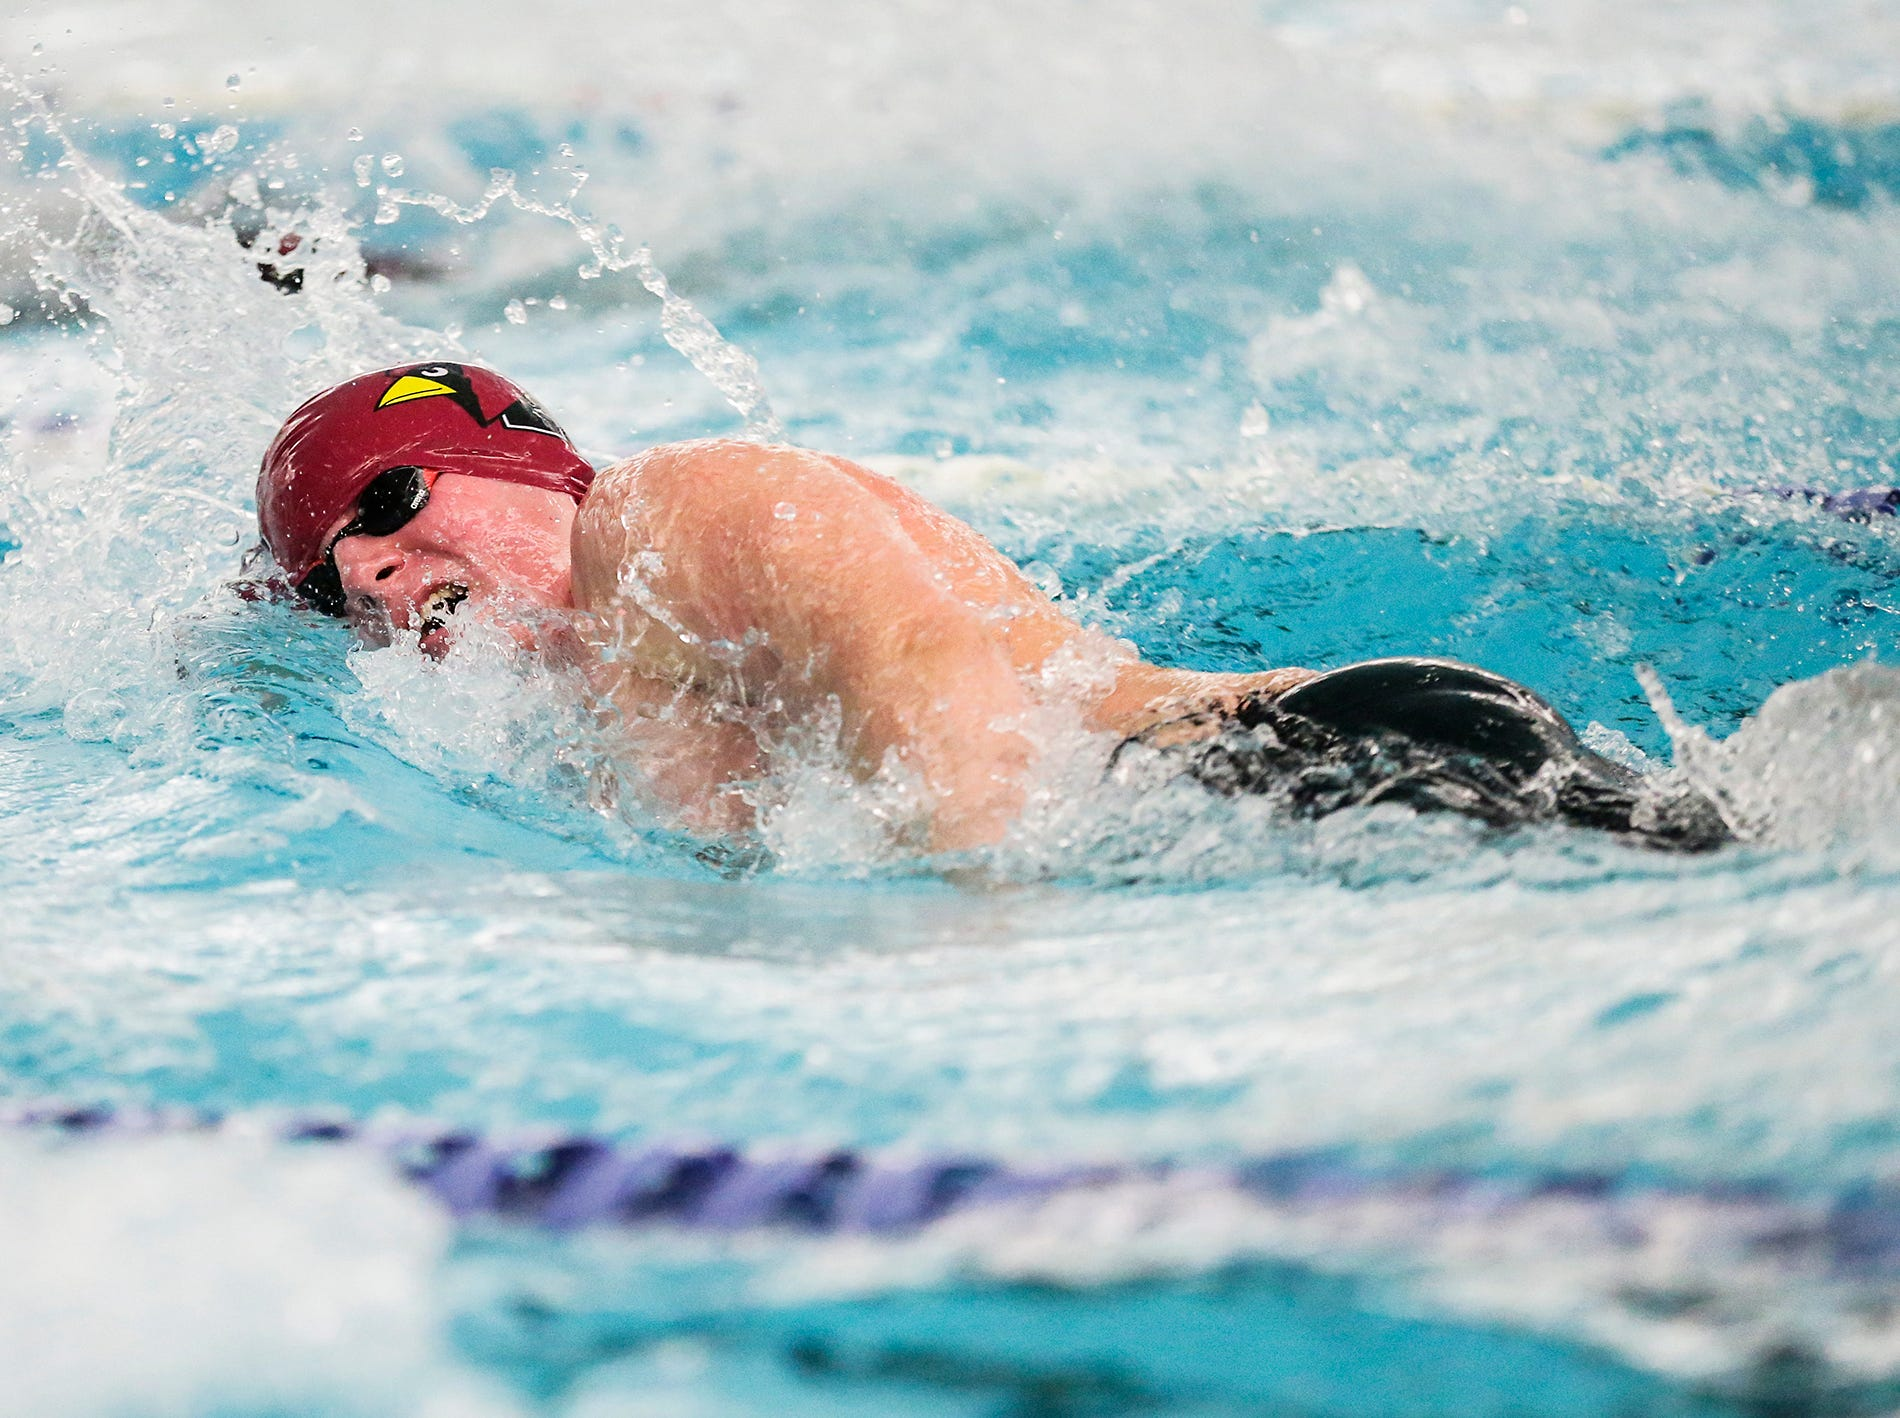 Fond du Lac High School's Bill Schultz competes in the 200 yard freestyle against Neenah High School during their swim meet Tuesday, December 11, 2018 in Fond du Lac, Wisconsin. Doug Raflik/USA TODAY NETWORK-Wisconsin